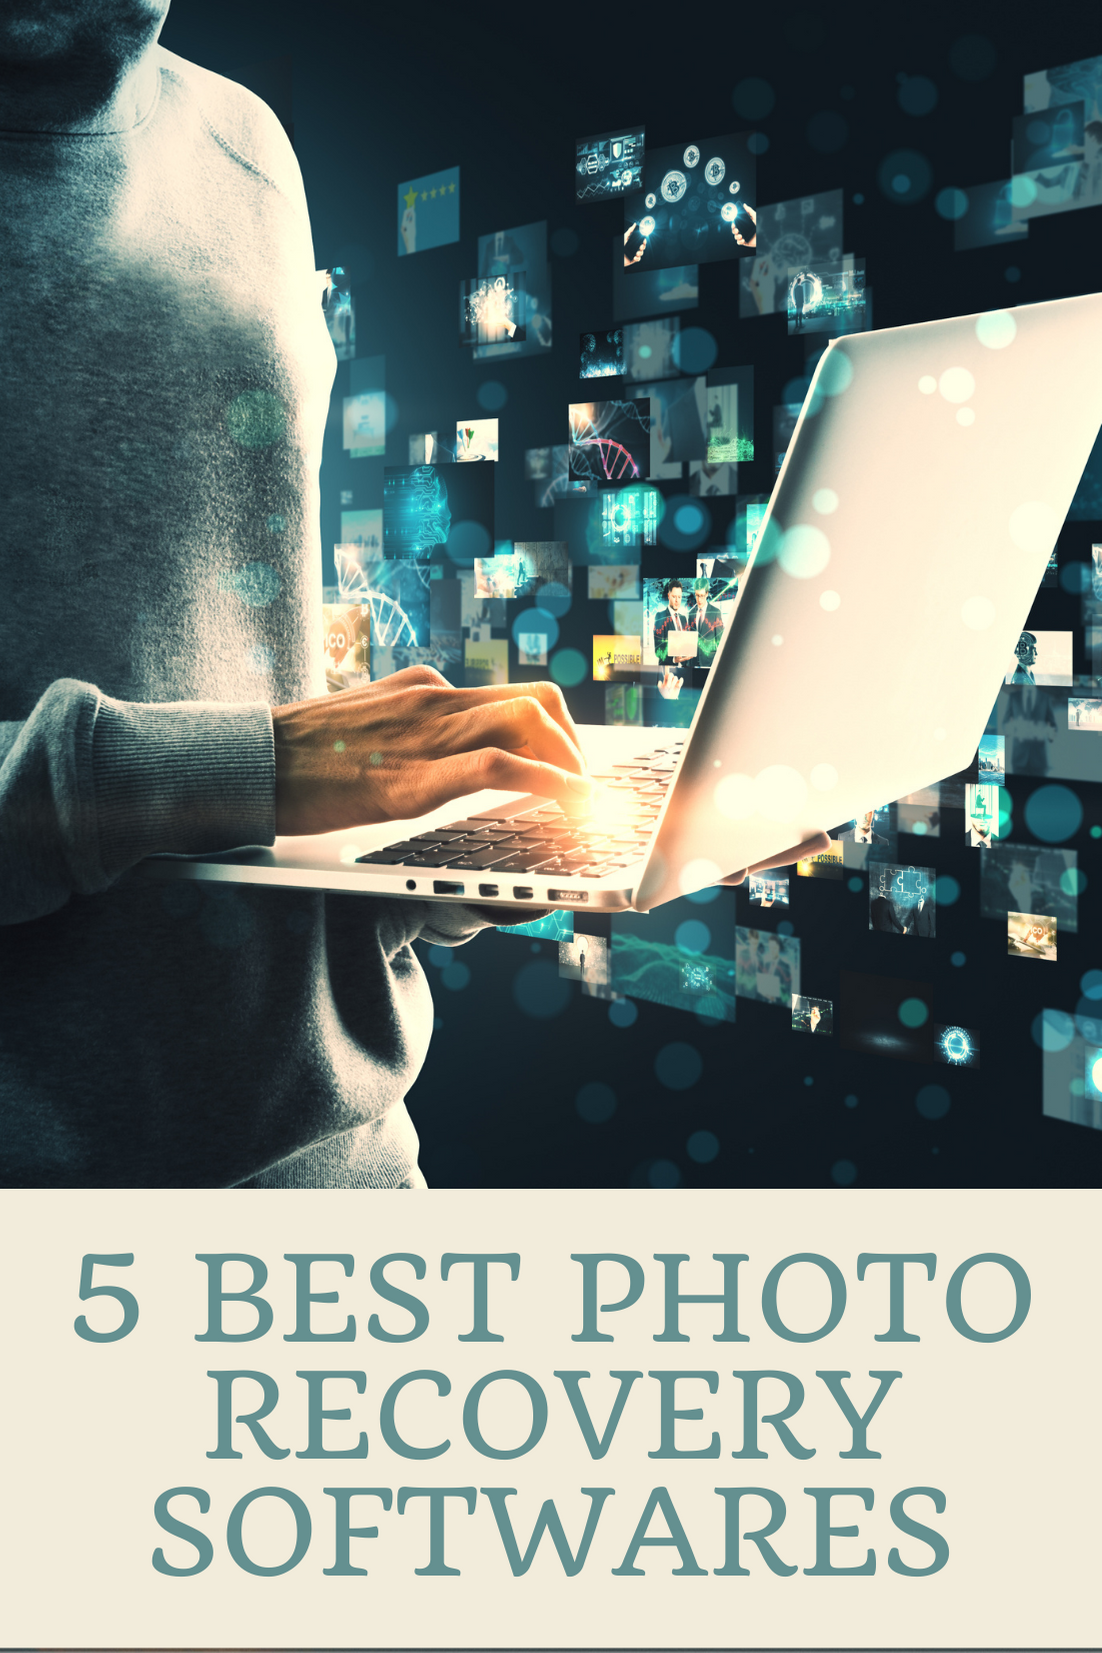 5 Best Photo Recovery Software